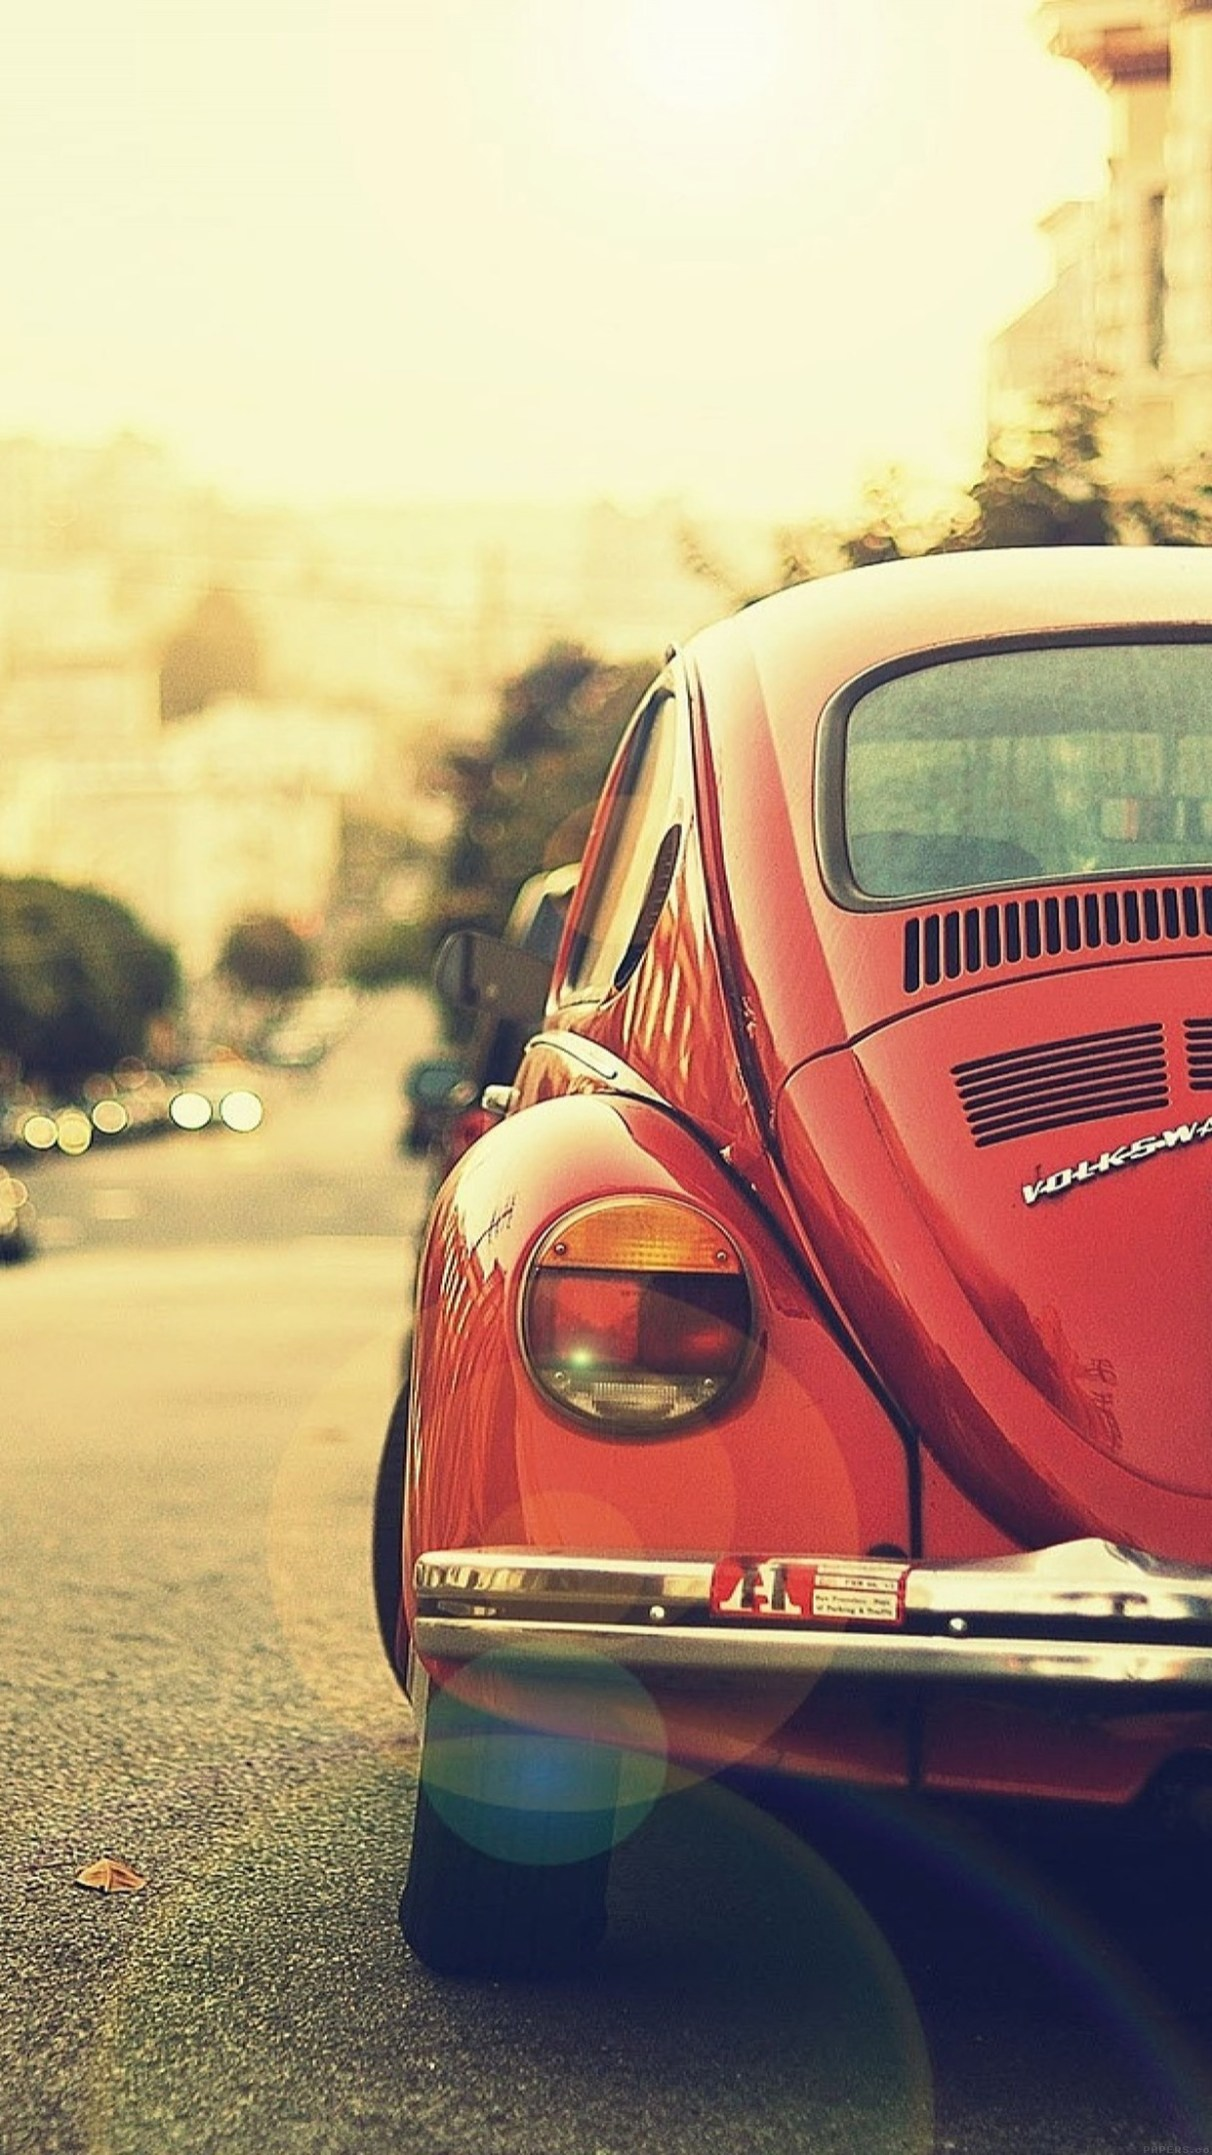 papers-co-mm13-old-car-street-vintage-34-iphone6-plus-wallpaper